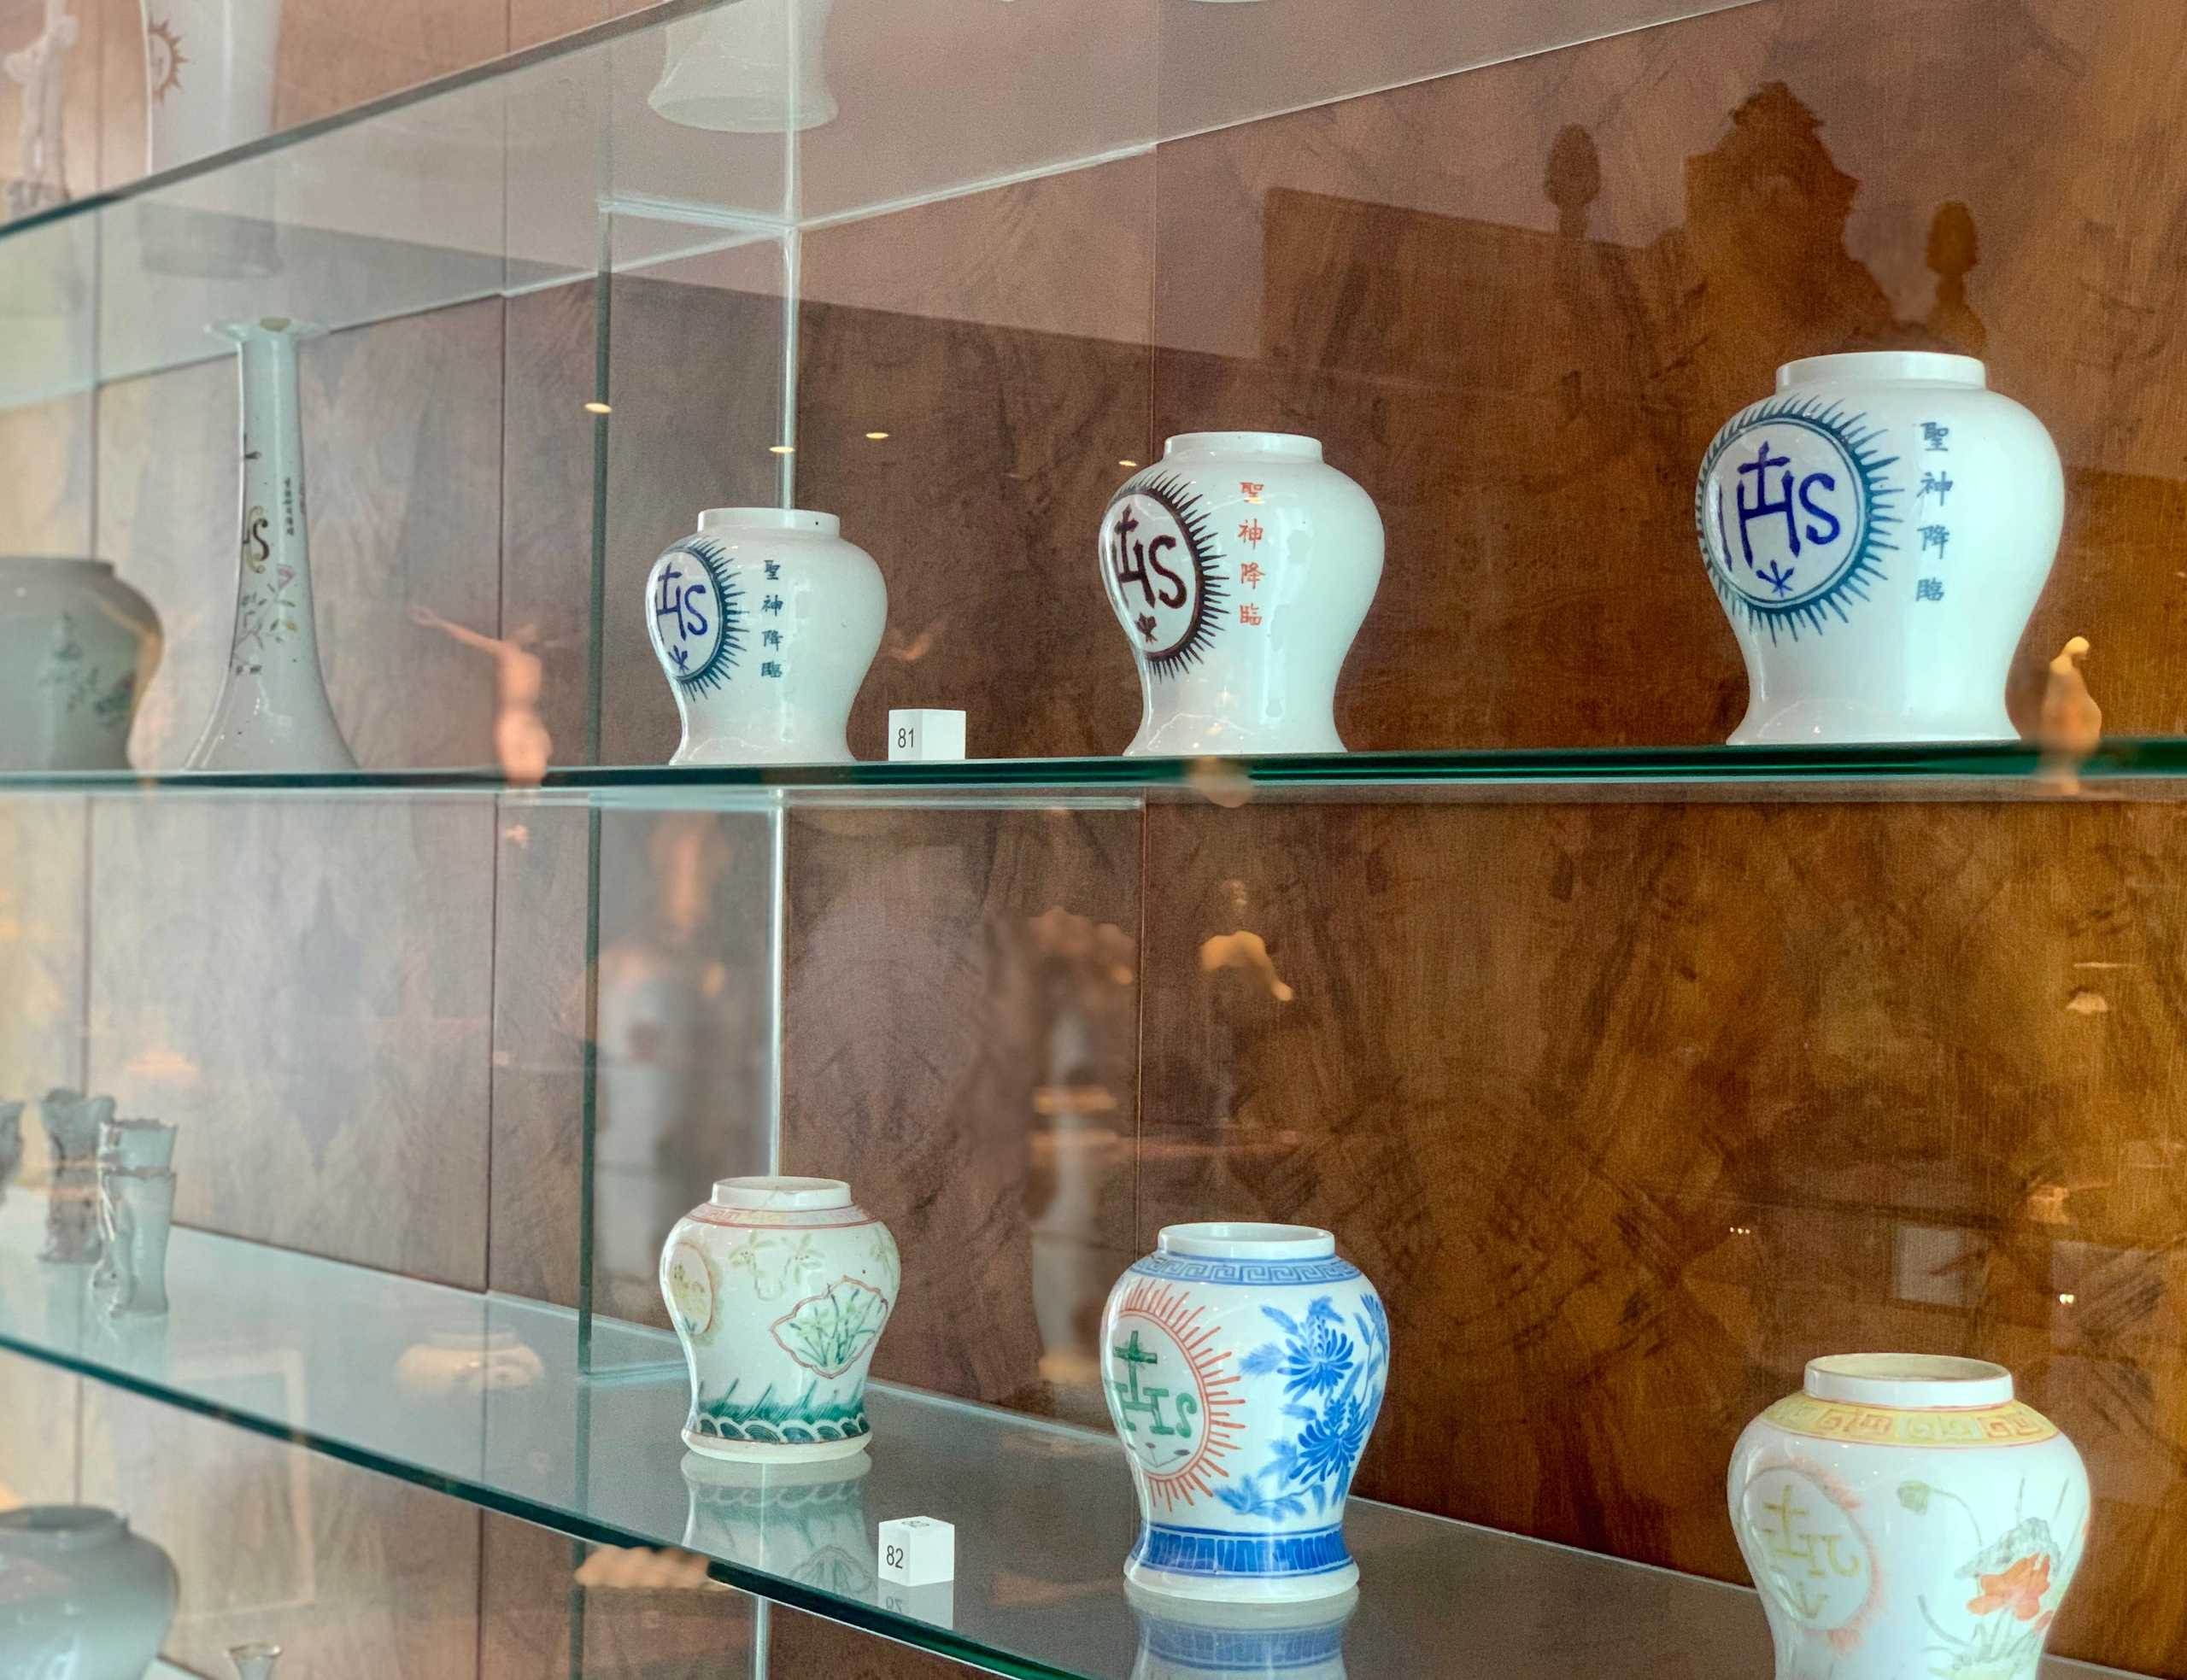 society of jesus monogram-porcelain-holy house of mercy museum-macau lifestyle